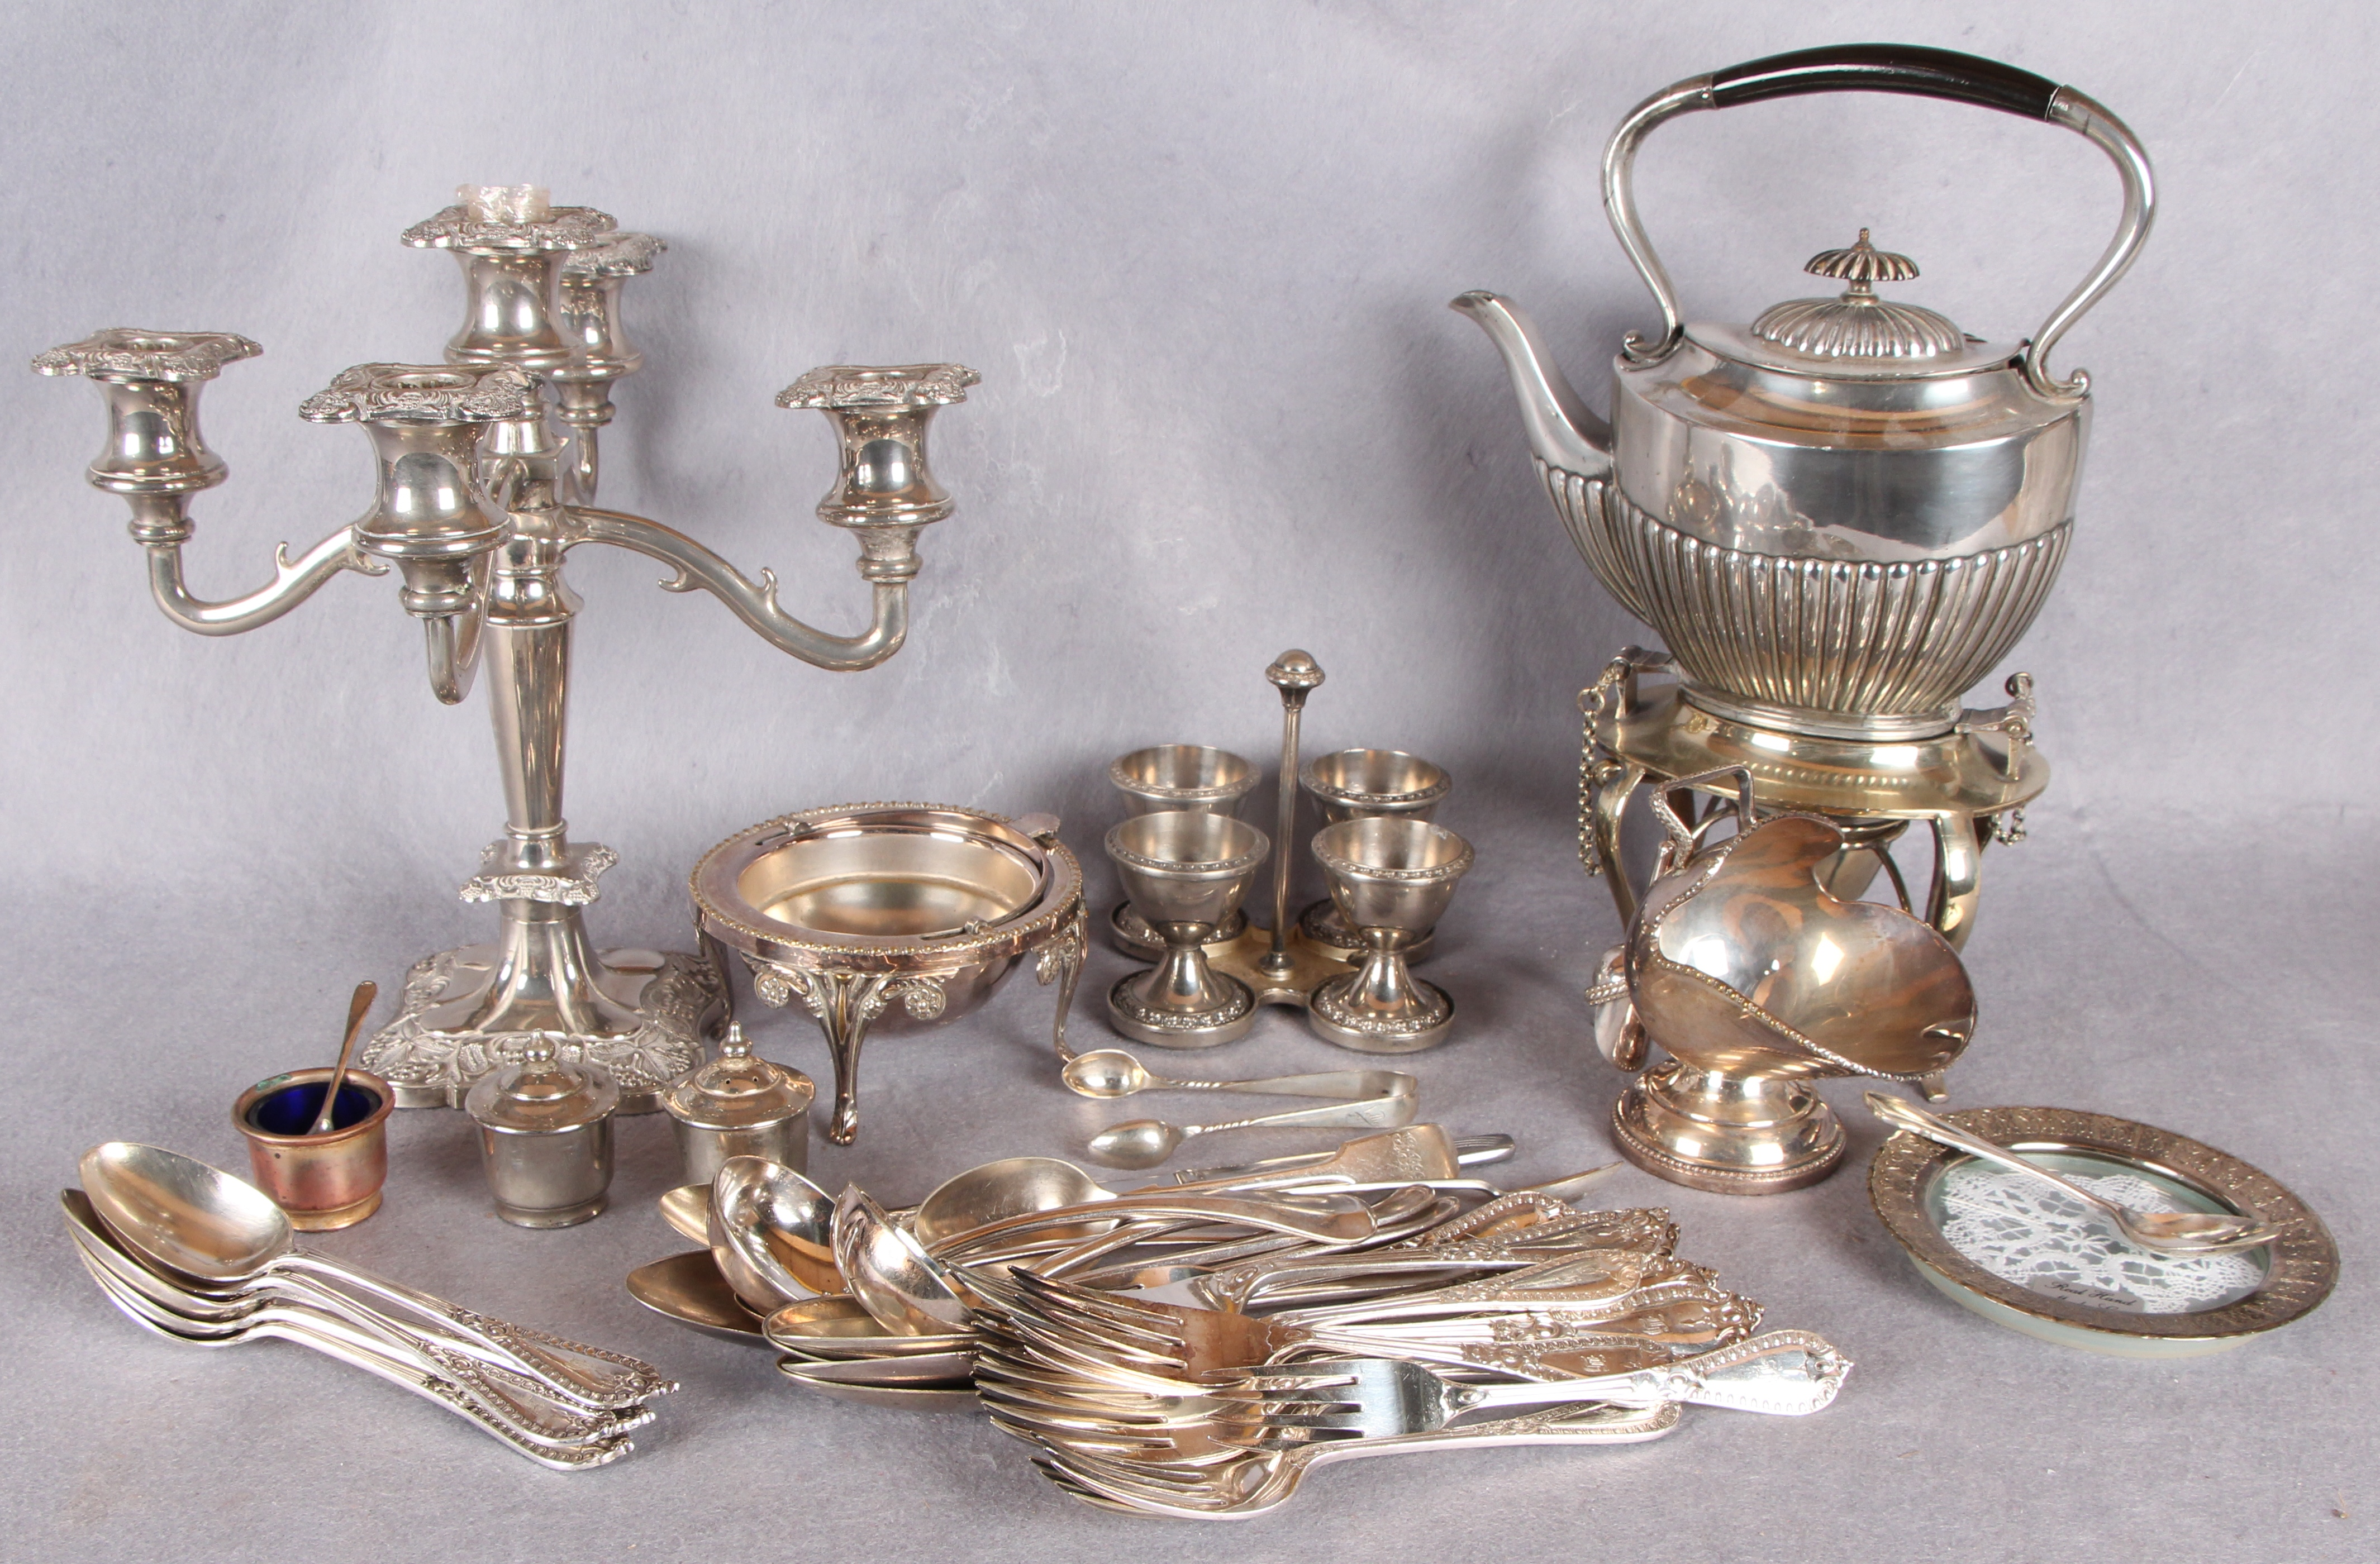 Lot 15 - Plated wares including a spirit kettle with stand and burner,